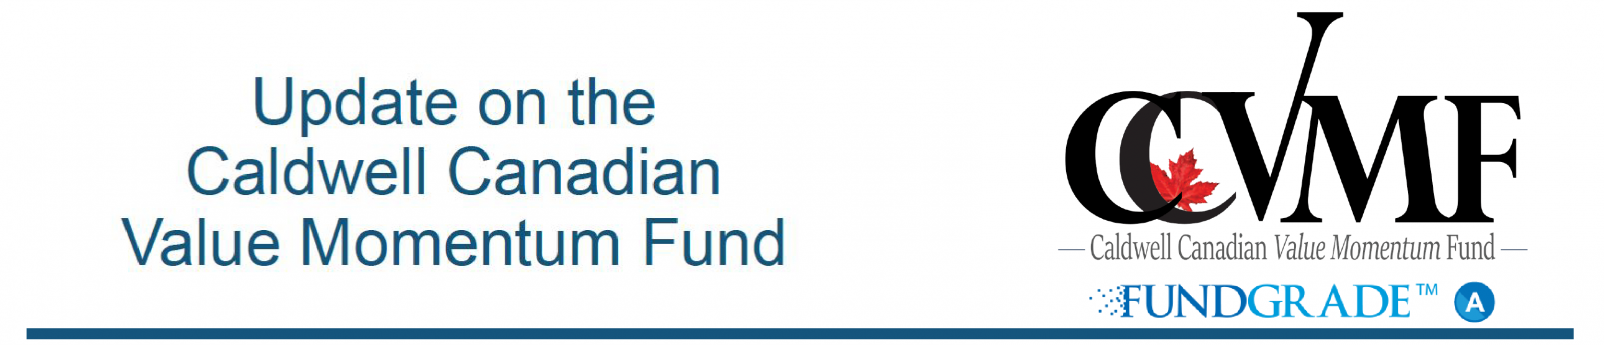 Update on the Caldwell Canadian Value Momentum Fund